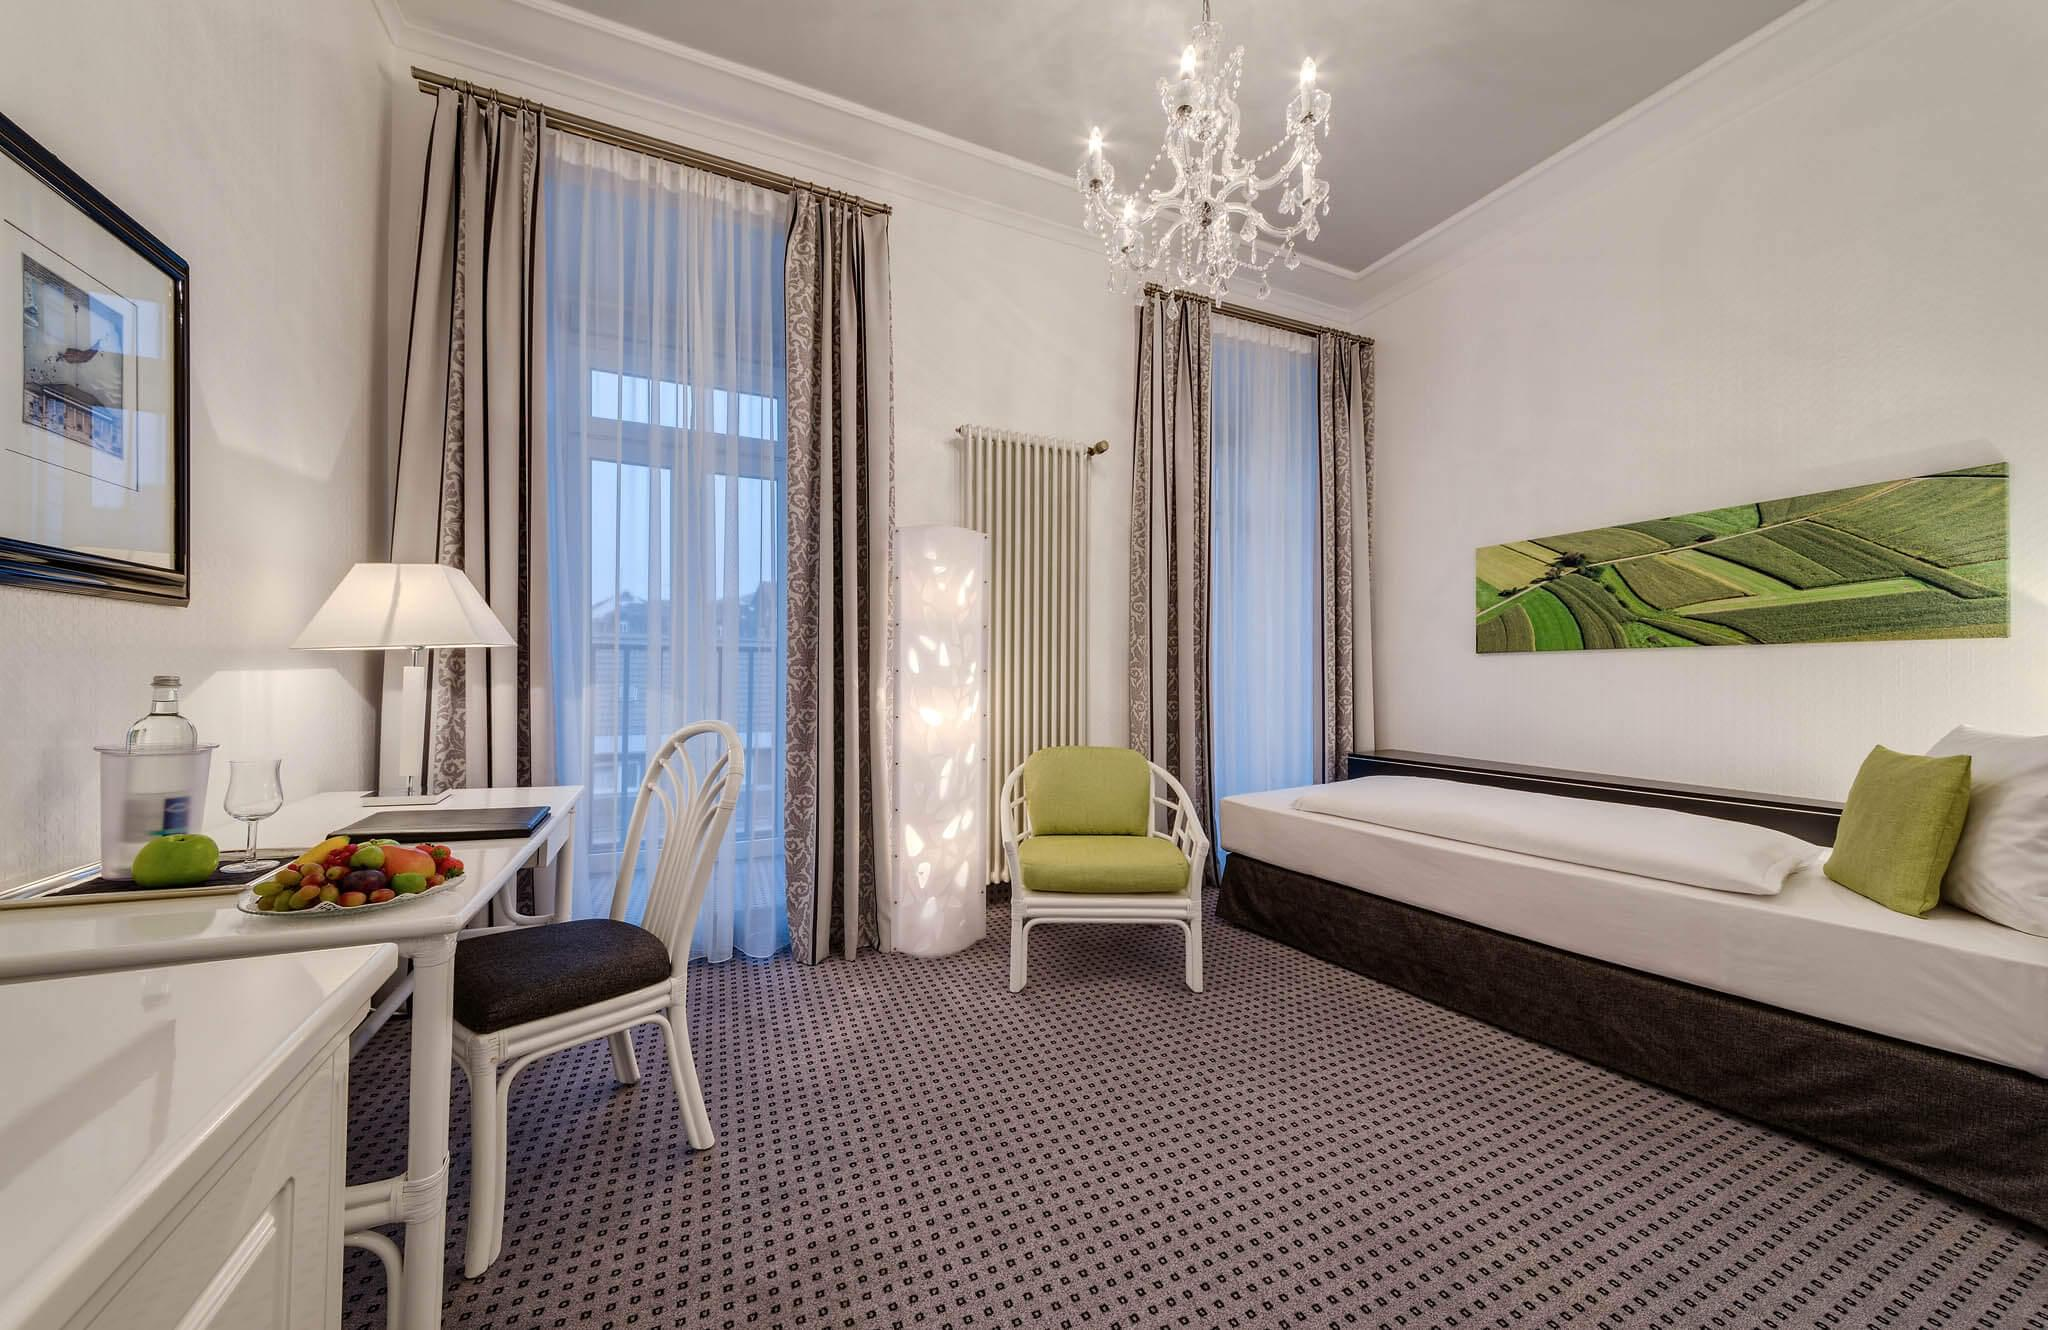 Business Zimmer, Business – Boulevard, Hotel am Sophienpark